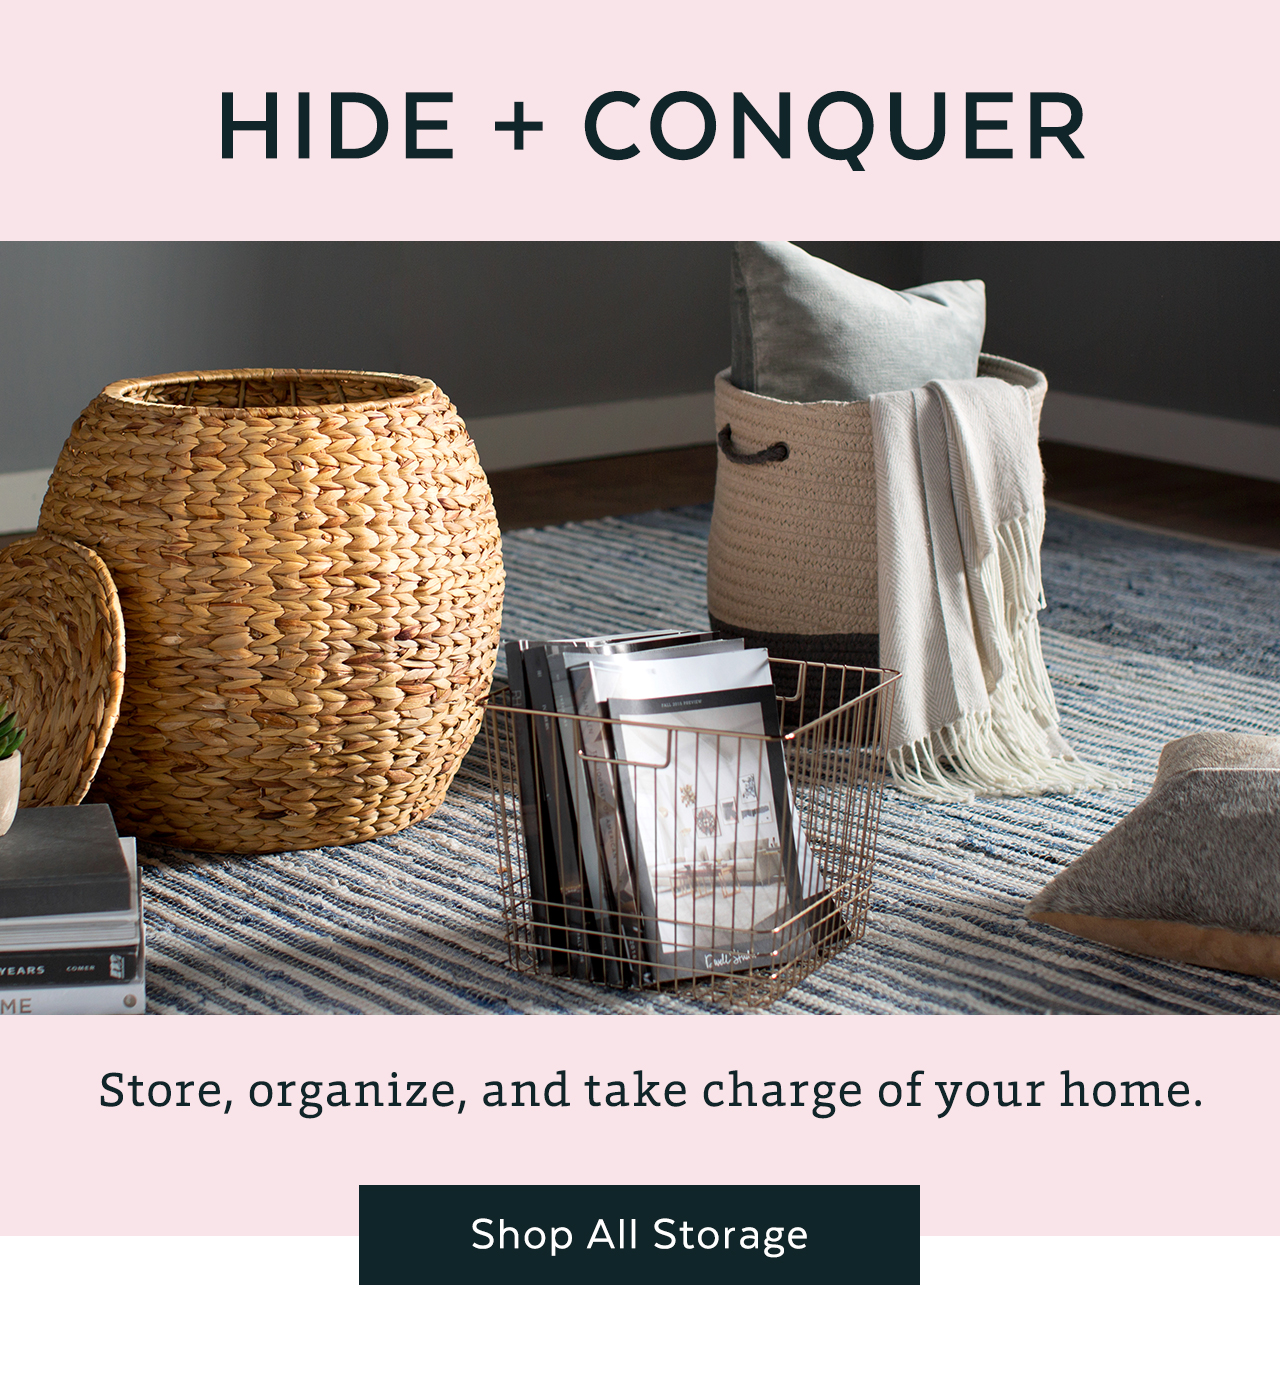 Hide and Conquer